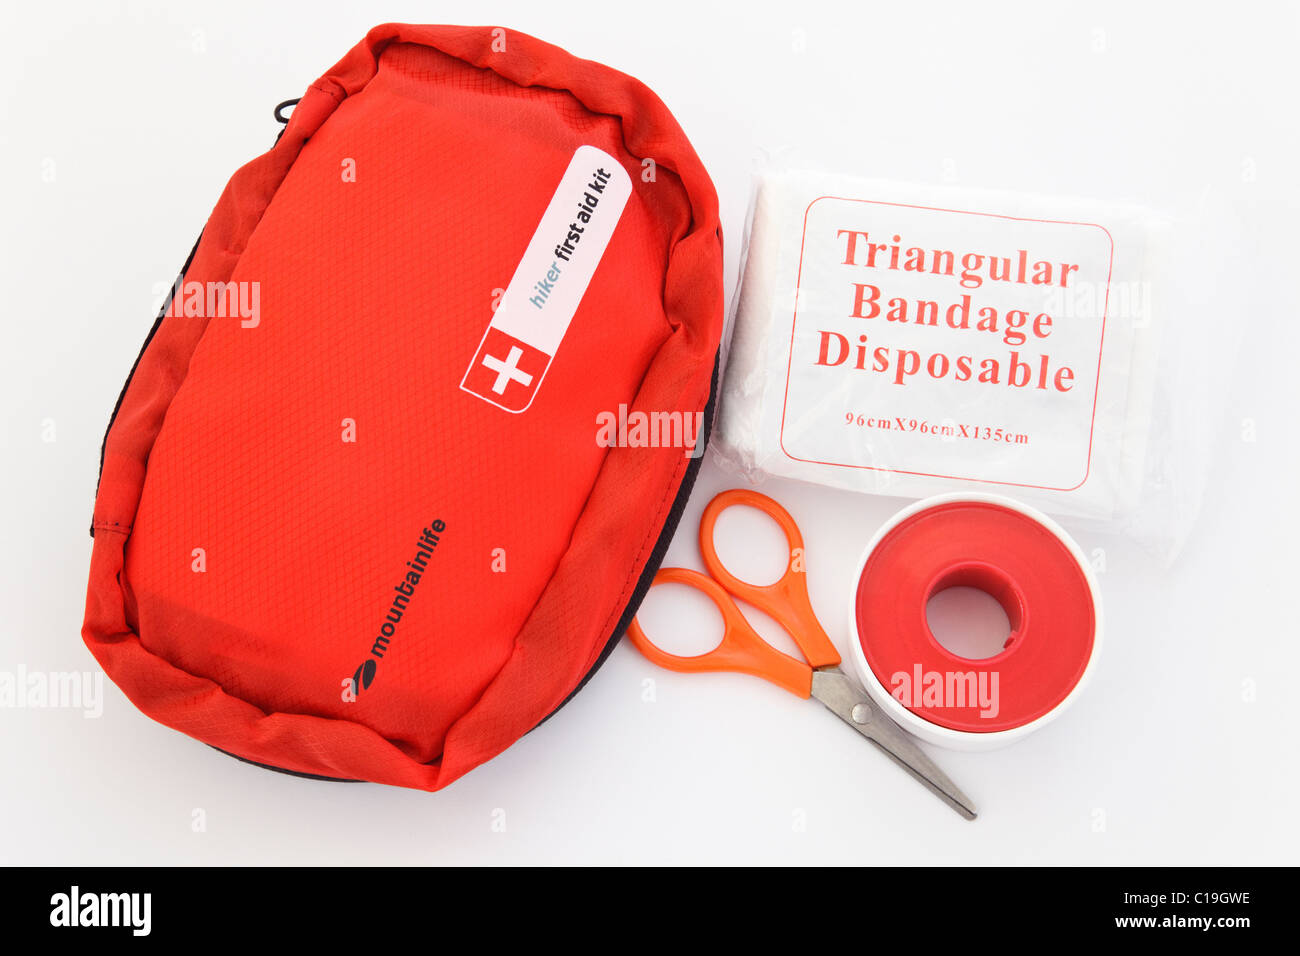 Hiker's first aid kit in a red bag with a triangular bandage packet, tape and scissors. England UK - Stock Image